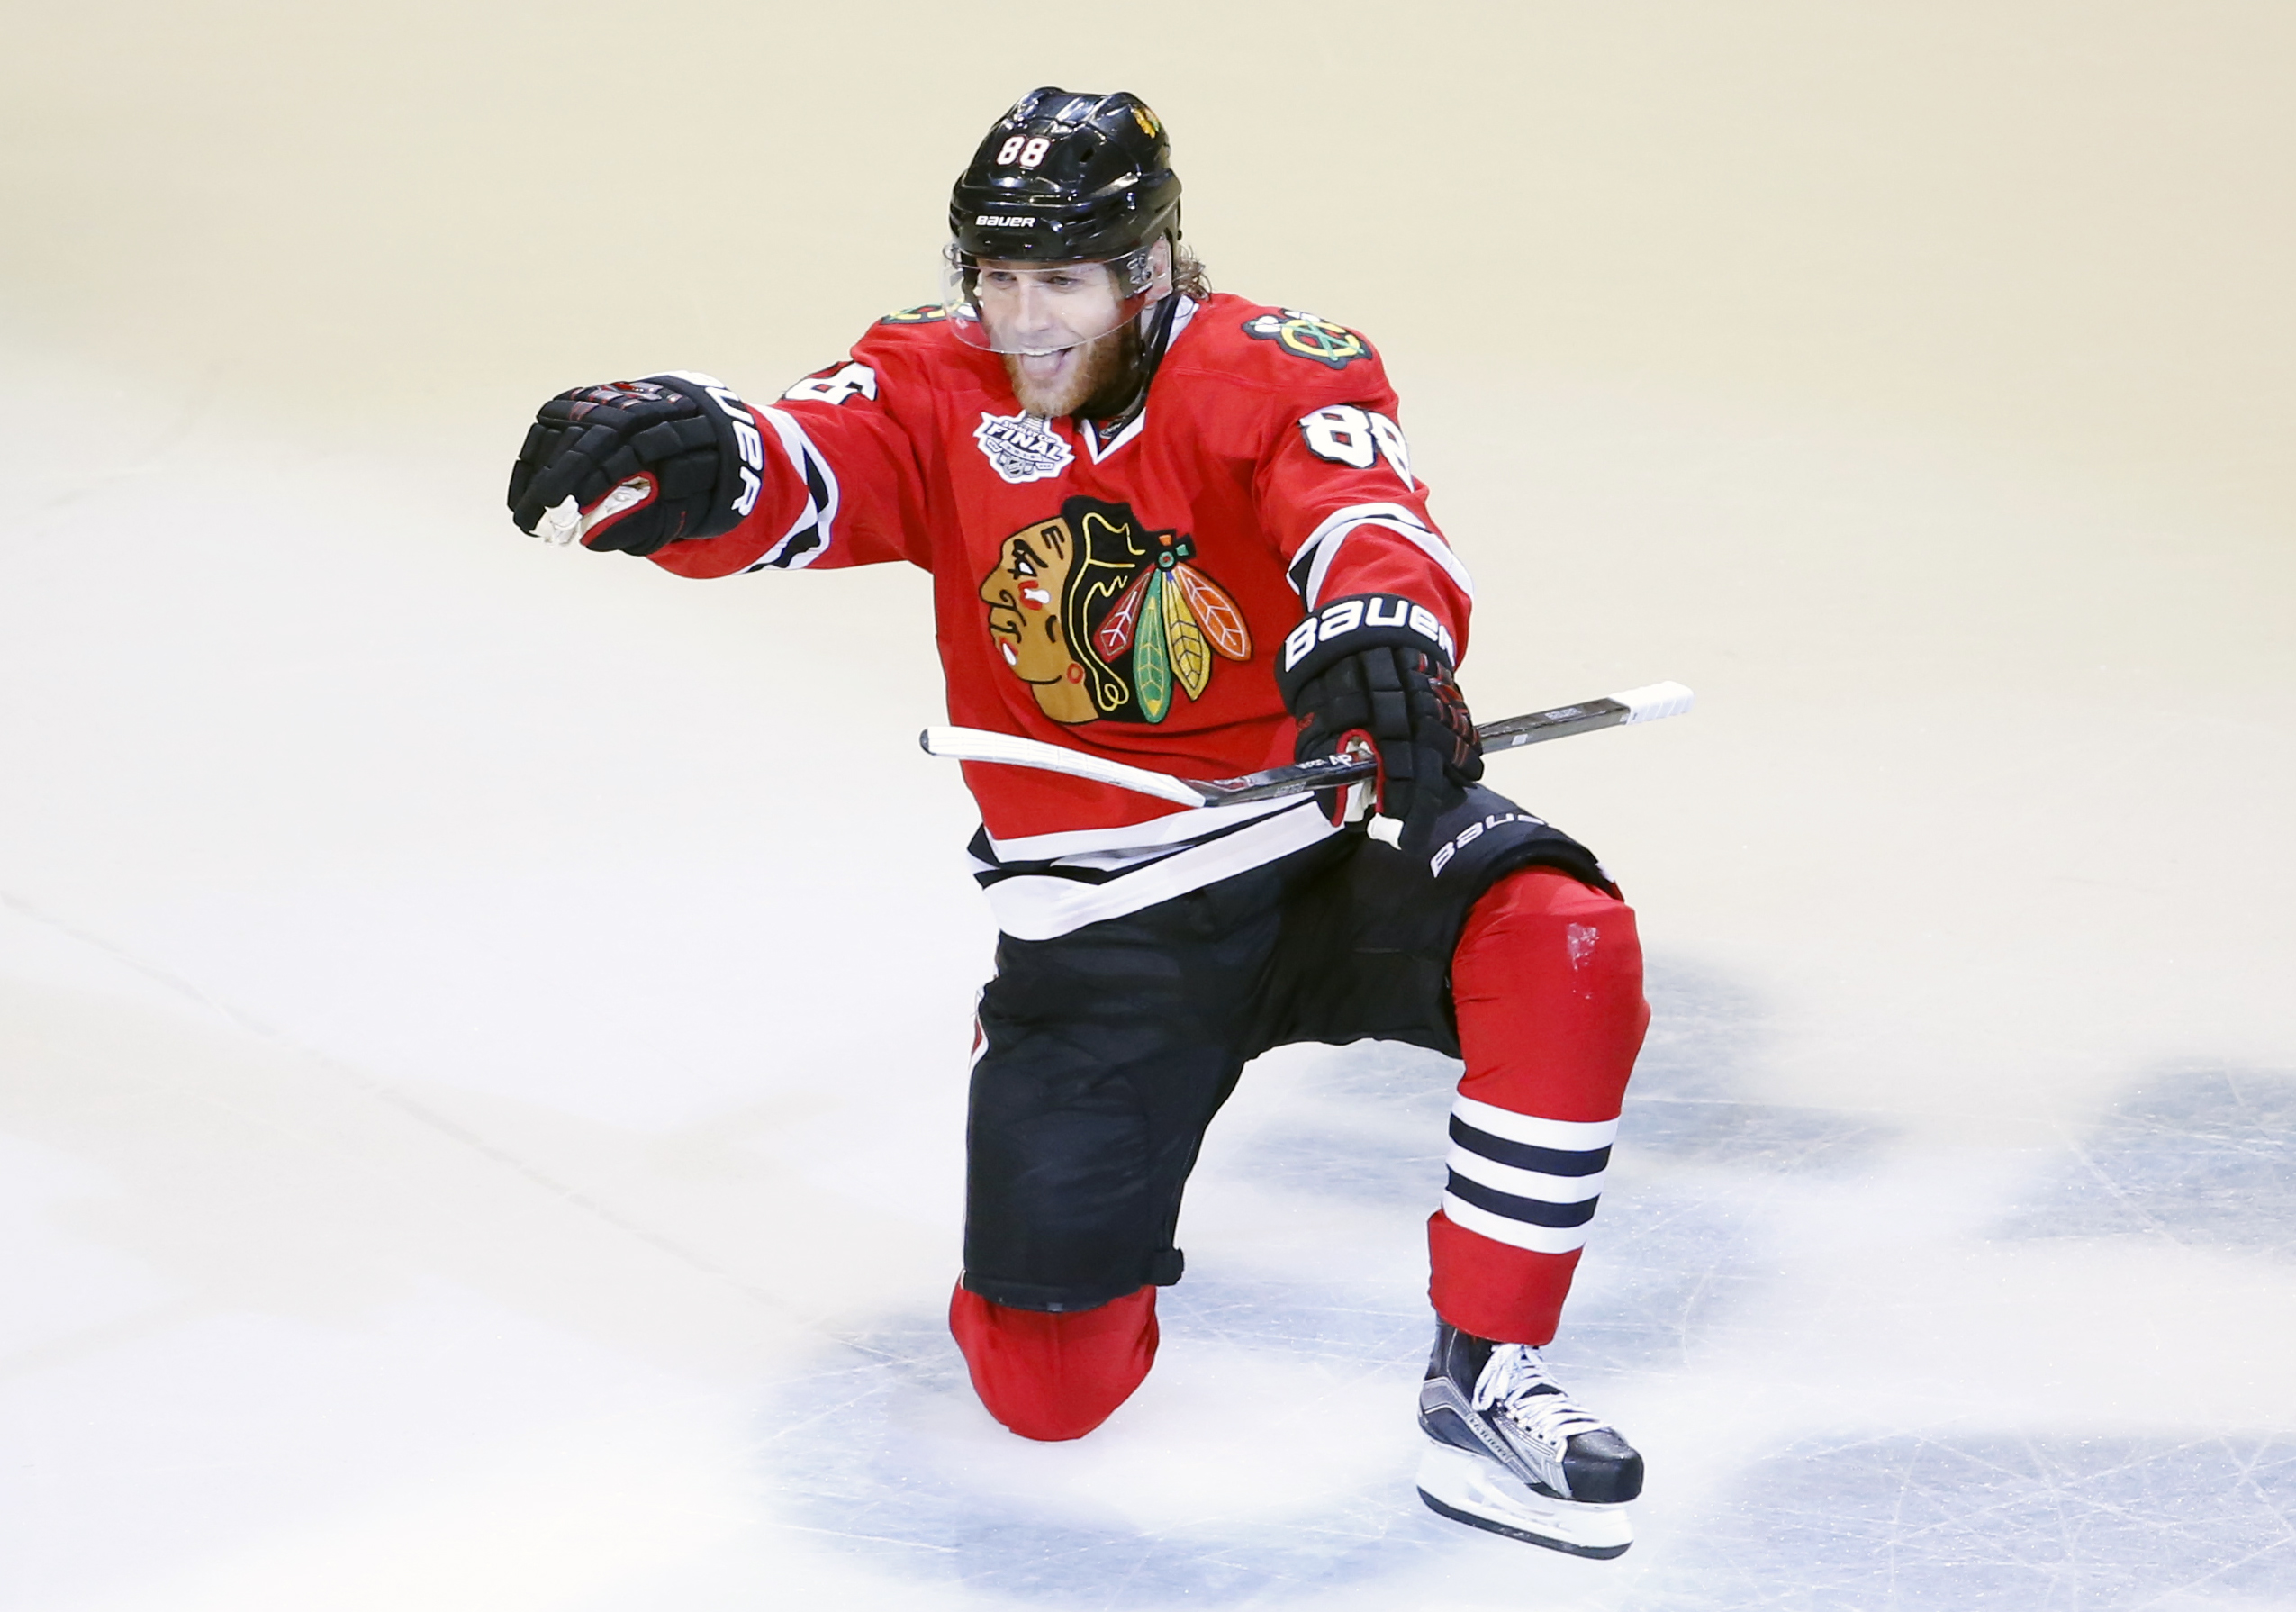 patrick kane athlete wallpaper 63937